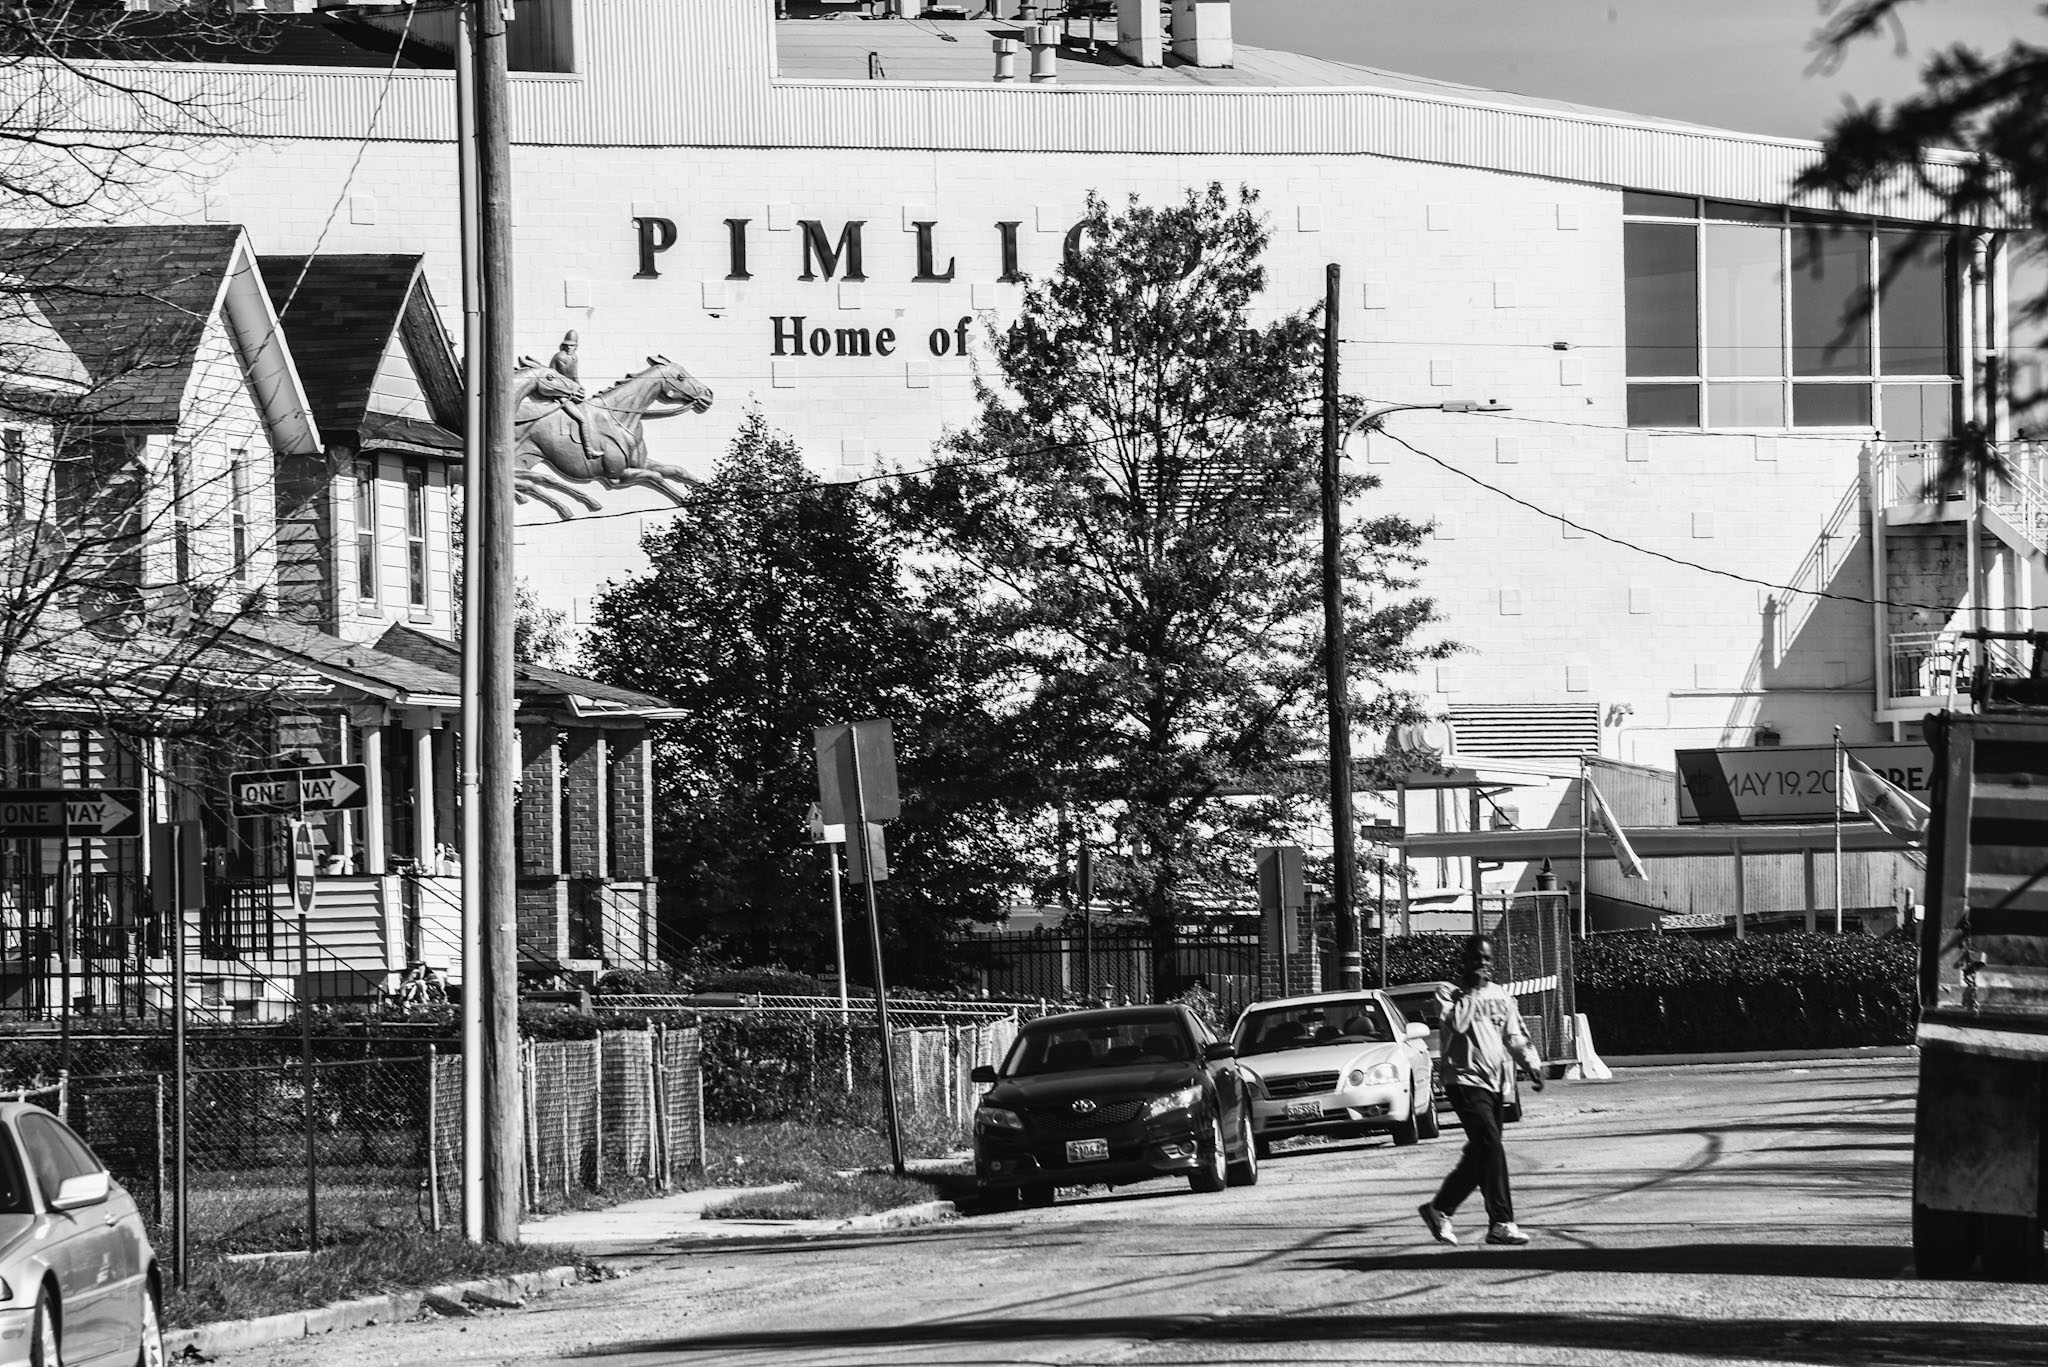 Since 1870, Pimlico Race Course has loomed over Baltimore's Park Heights neighborhood.